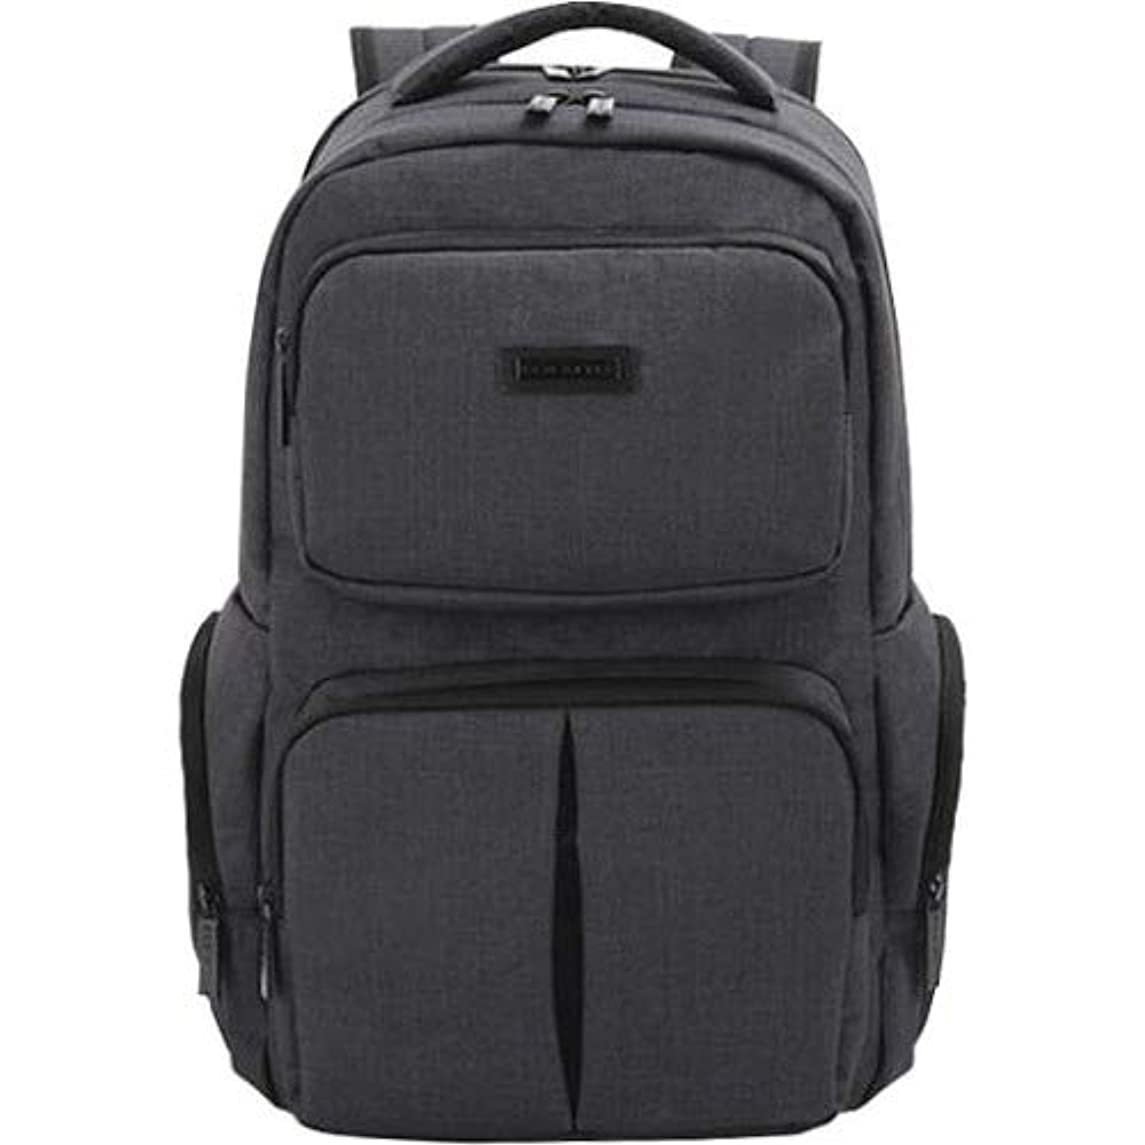 Eco Style Deluxe Carrying Case (Backpack) for 15.6